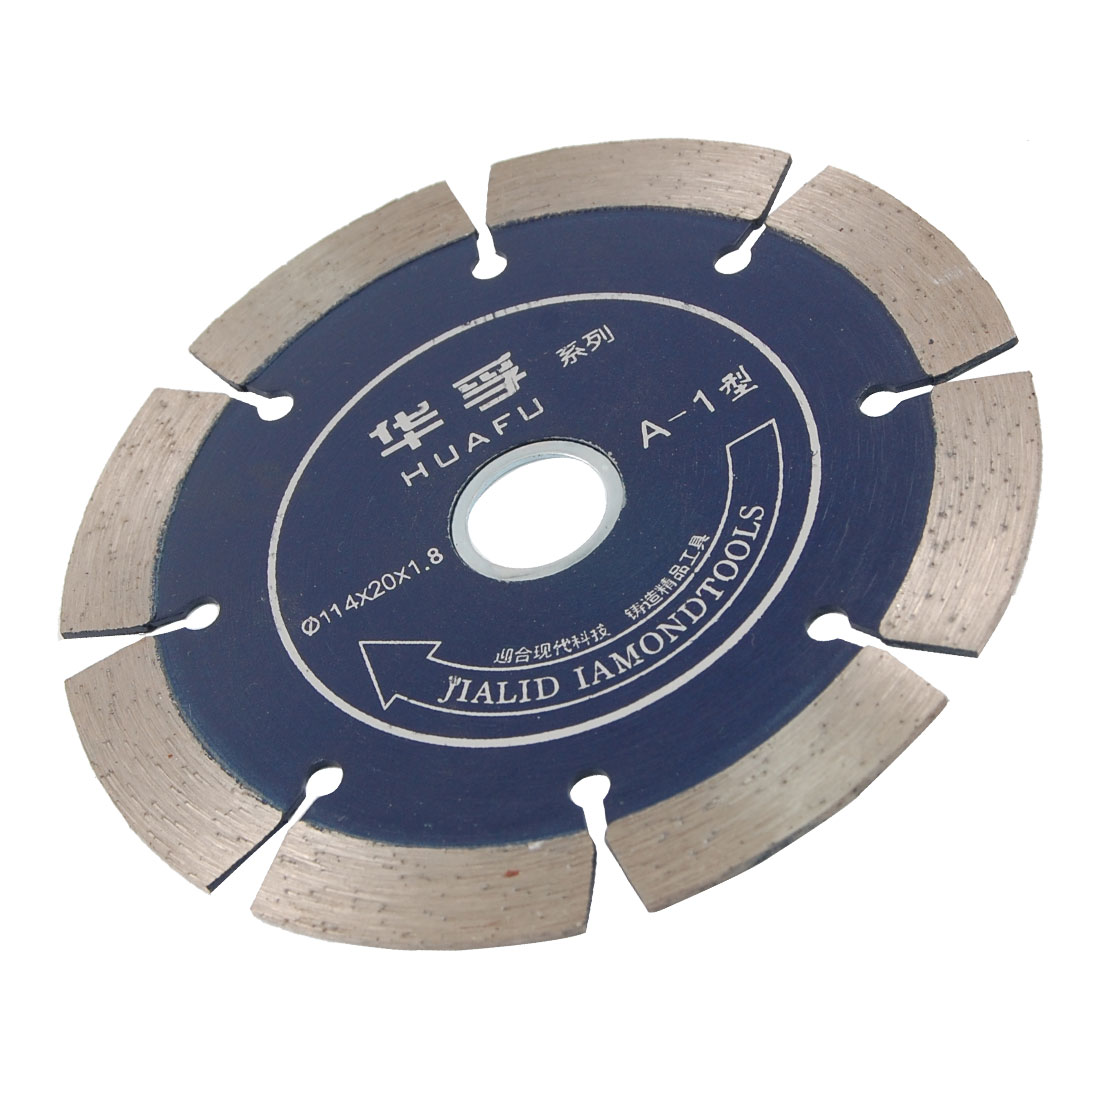 114mm x 20mm x 1.8mm Circular 8 Segments Crack Diamond Saw Blade